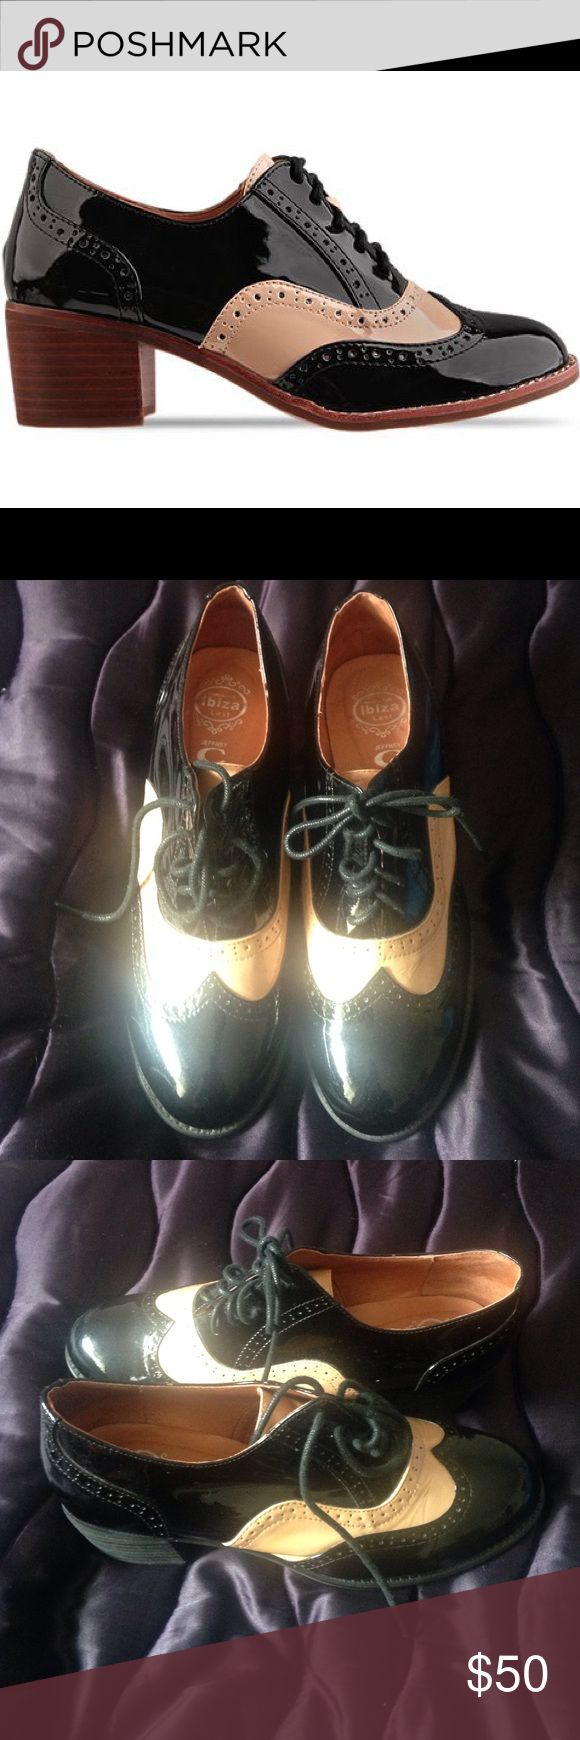 """Jeffery Campbell """" Williams"""" Leather made old school lace up oxford with black/ tan design, size 8.5, has been worn, cute shoe to pair with the perfect menswear or suit. Jeffrey Campbell Shoes"""